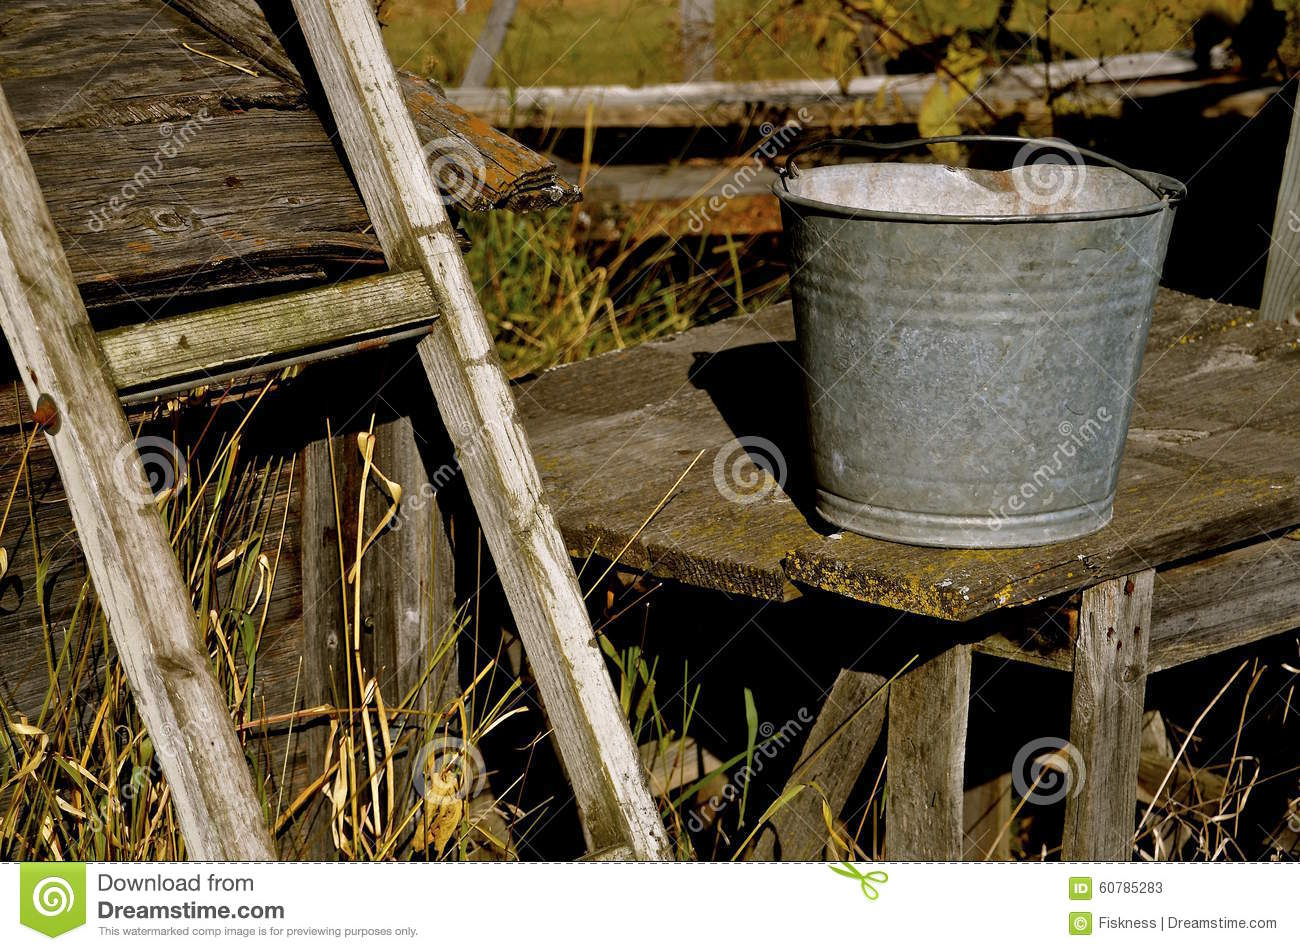 Galvanized pail rests on an old table